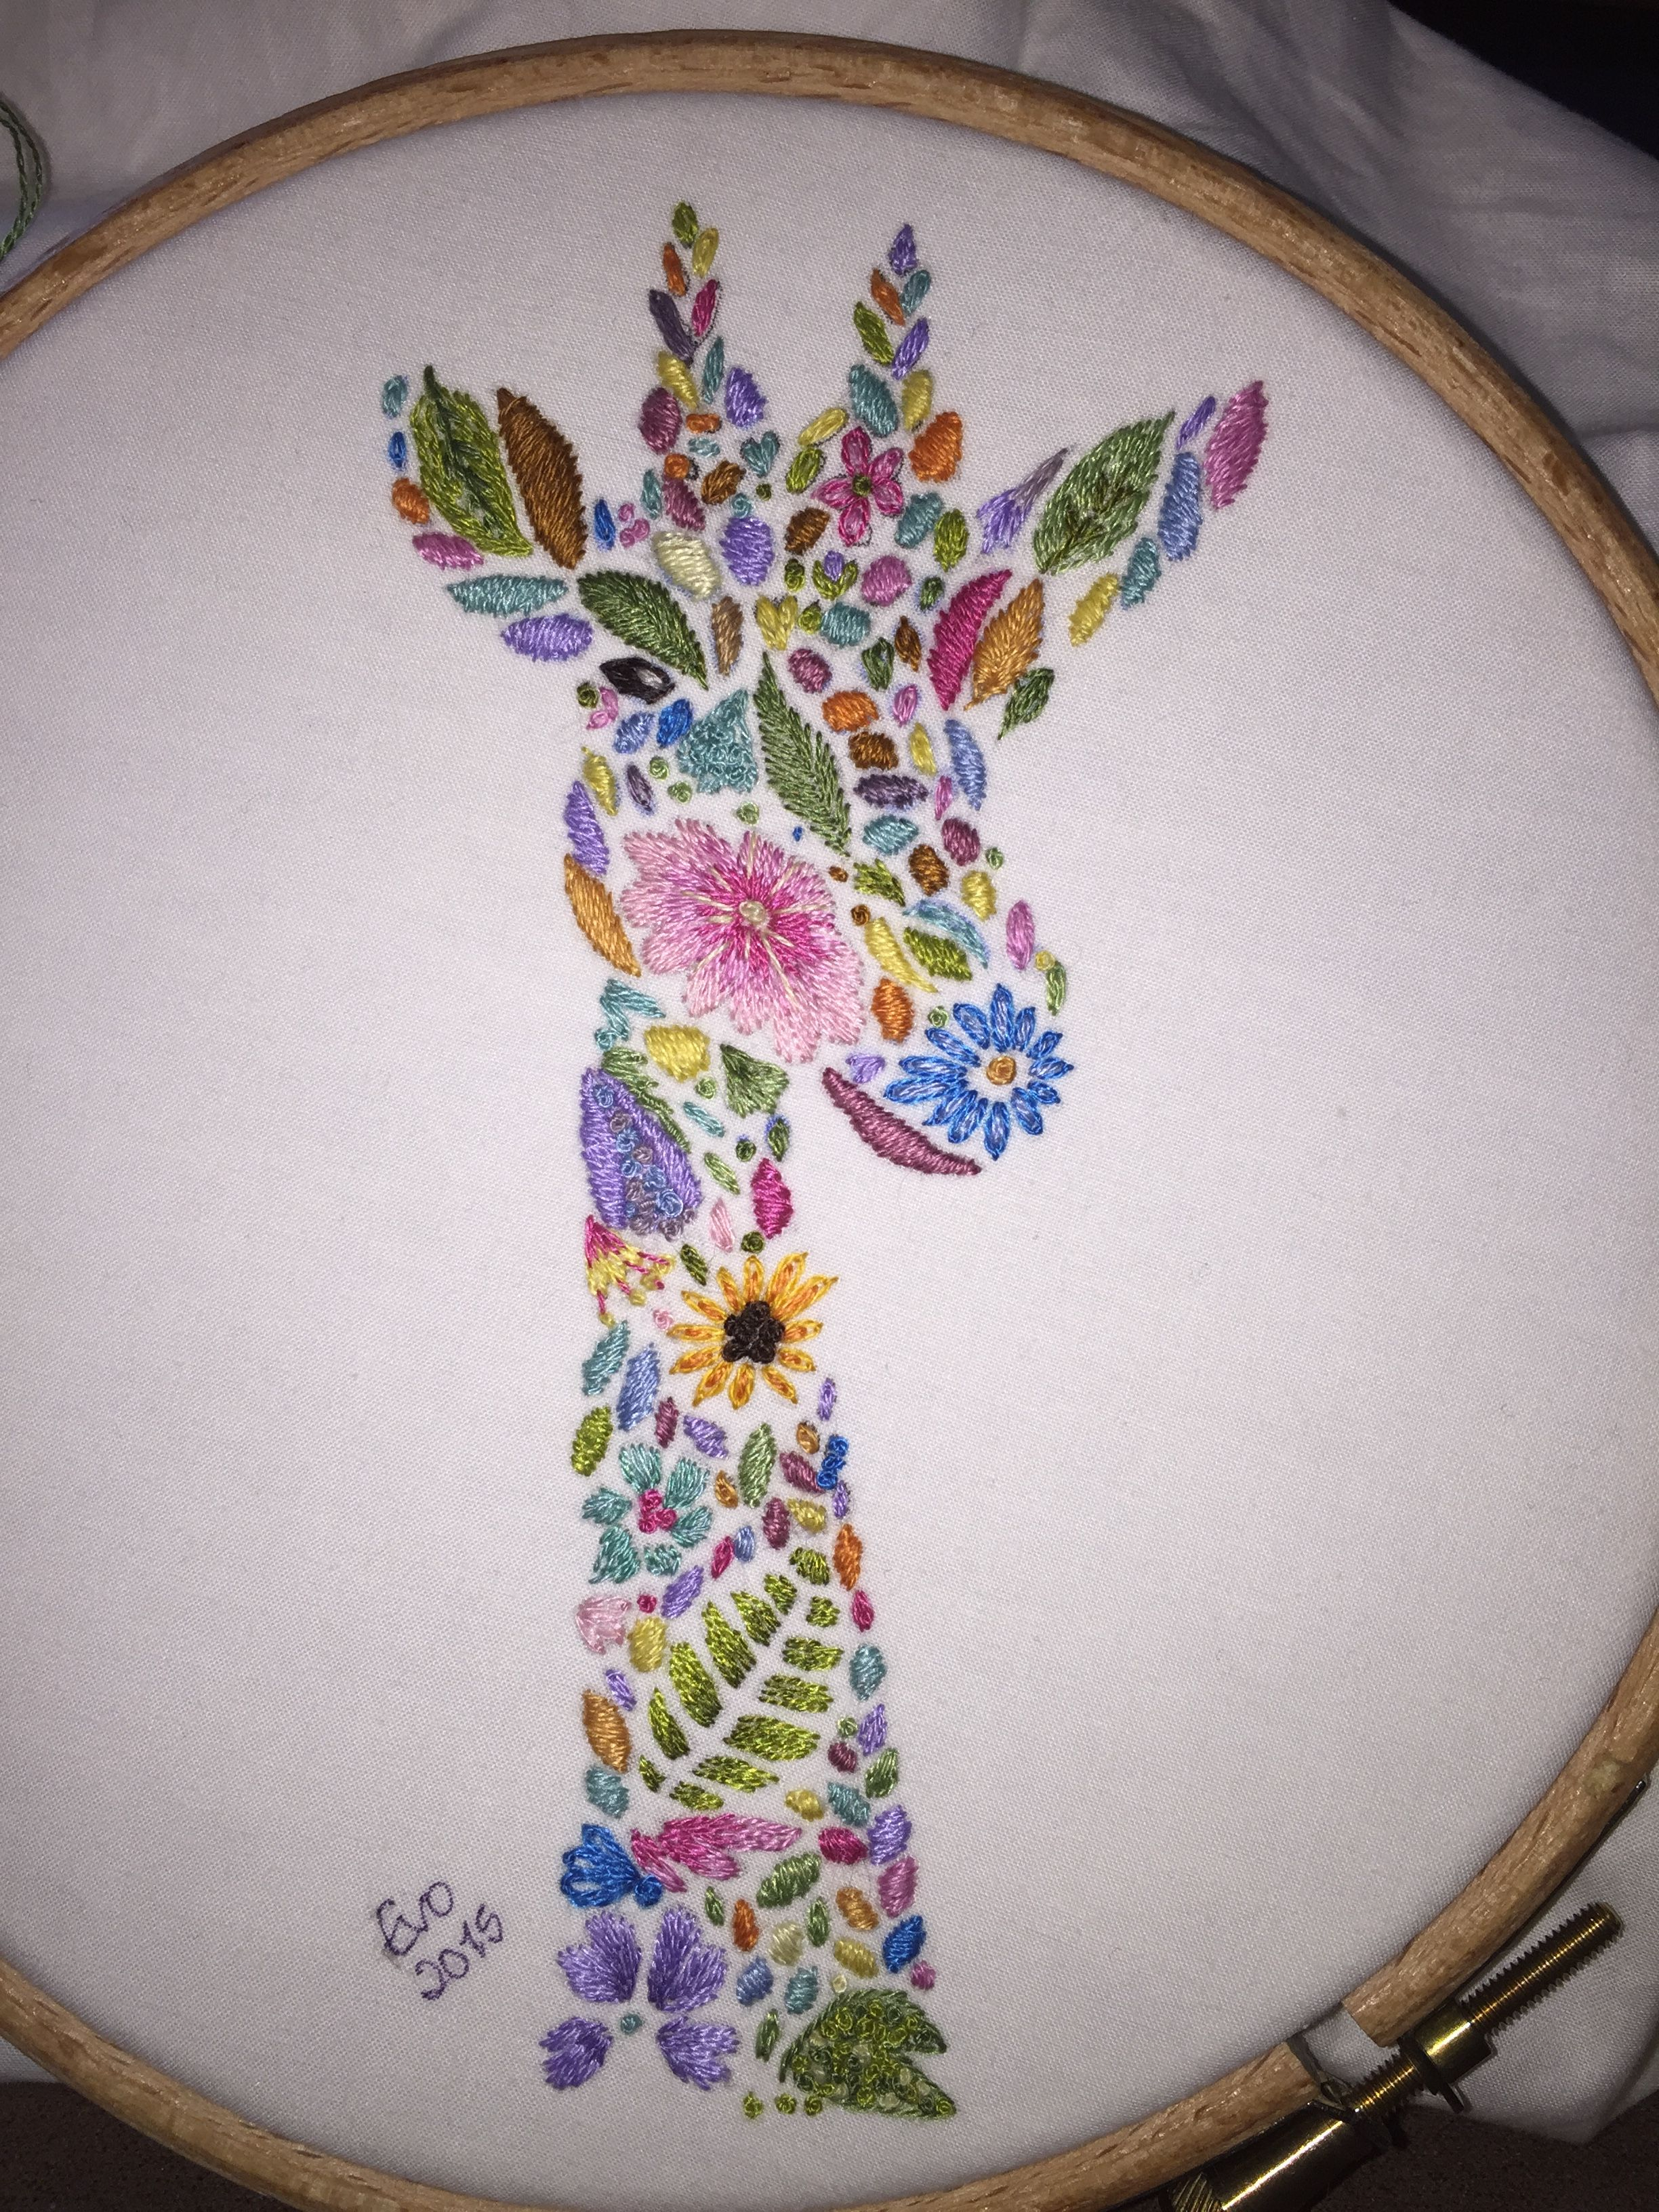 Pin on My Embroidery Designs